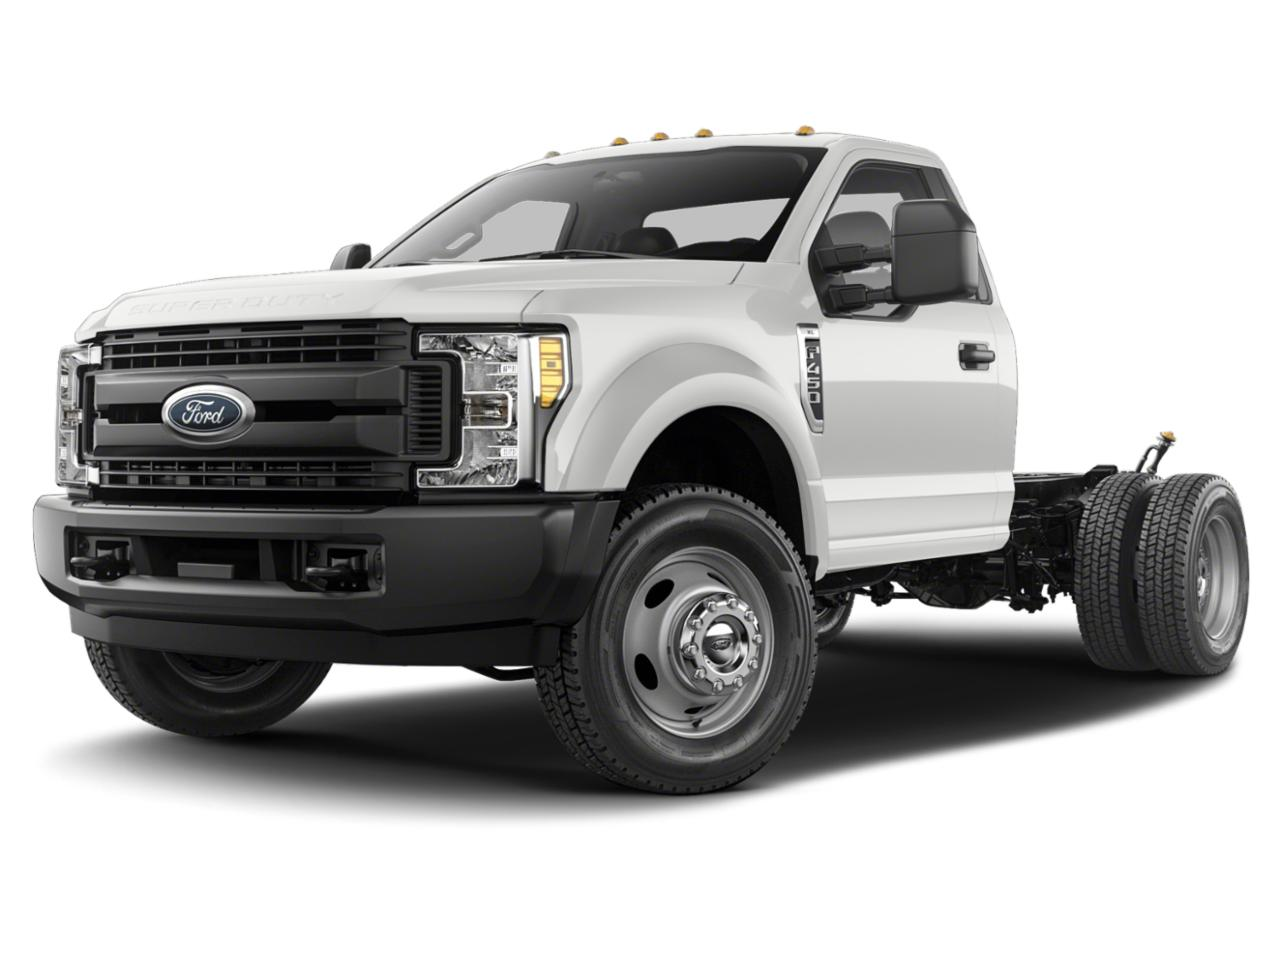 2019 Ford Super Duty F-450 DRW Vehicle Photo in CHARLOTTE, NC 28212